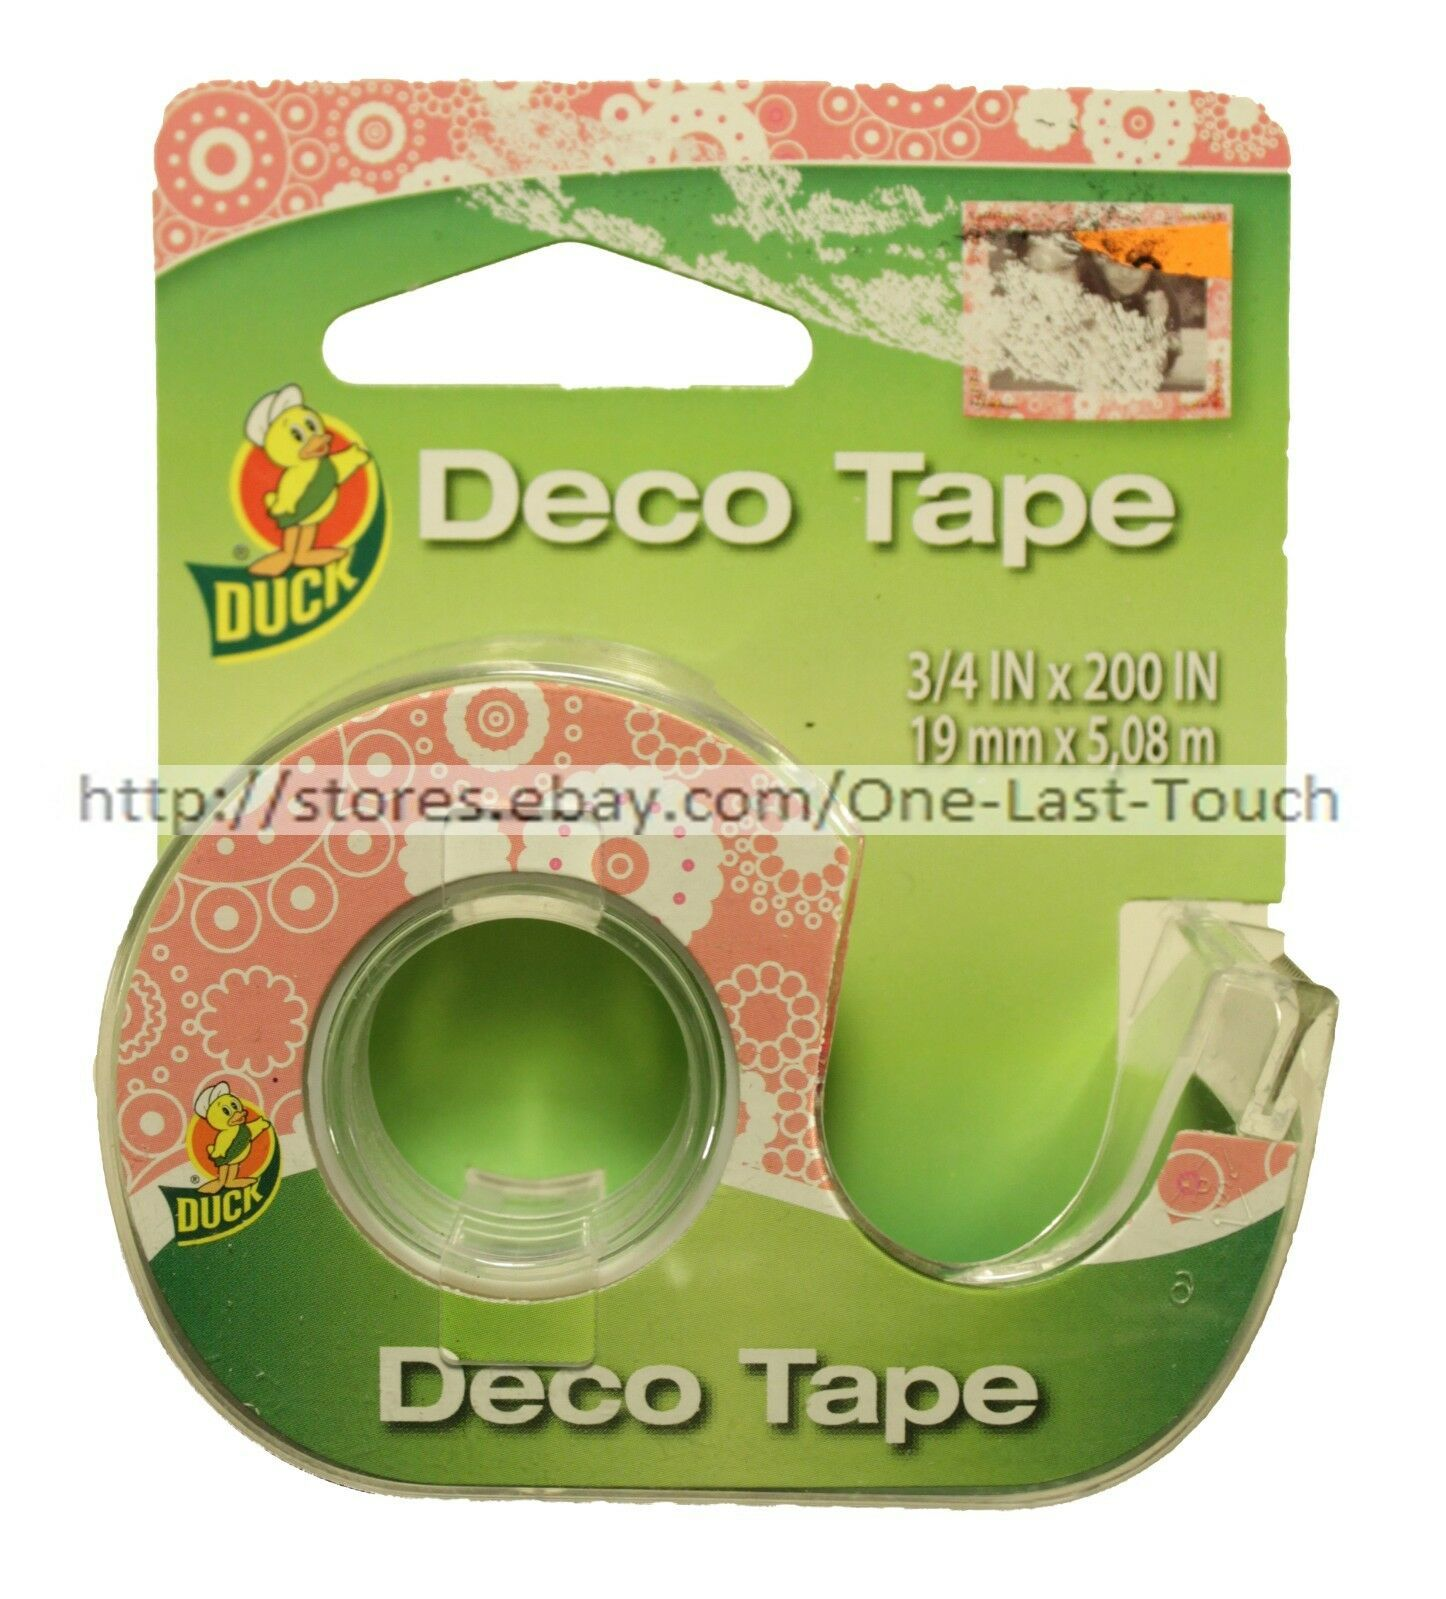 DUCK* Decorative DECO TAPE Handheld Dispenser GLOSSY FINISH New! *YOU CHOOSE* image 3